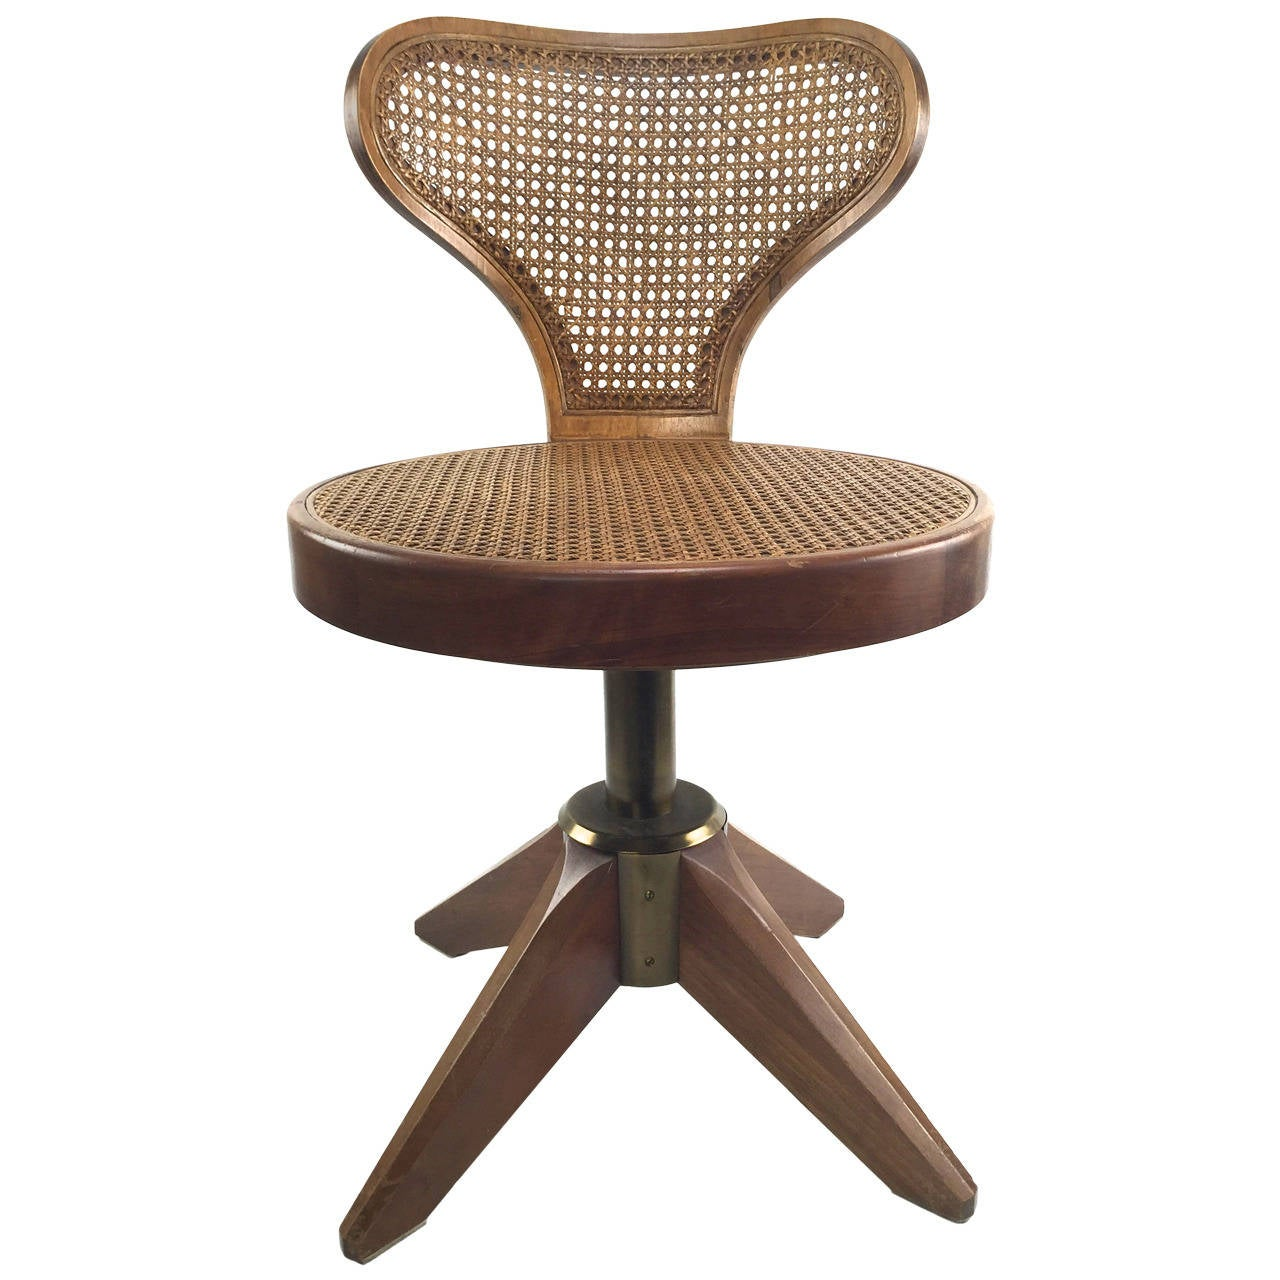 swivel chair wooden legs for hemorrhoids striking caned on splayed sale at